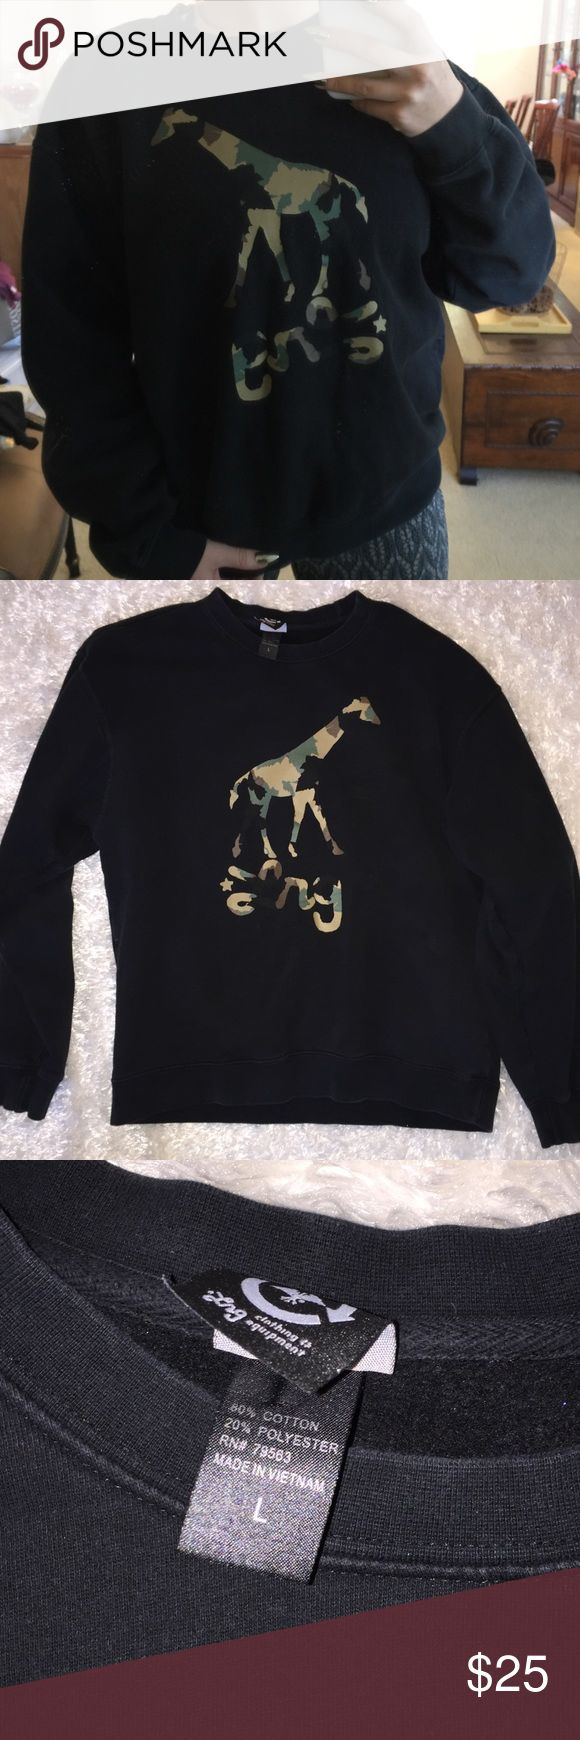 LRG Camo Design Crewneck In great condition! Size large. Perfect pullover for fall ☺️ Lrg Shirts Sweatshirts & Hoodies